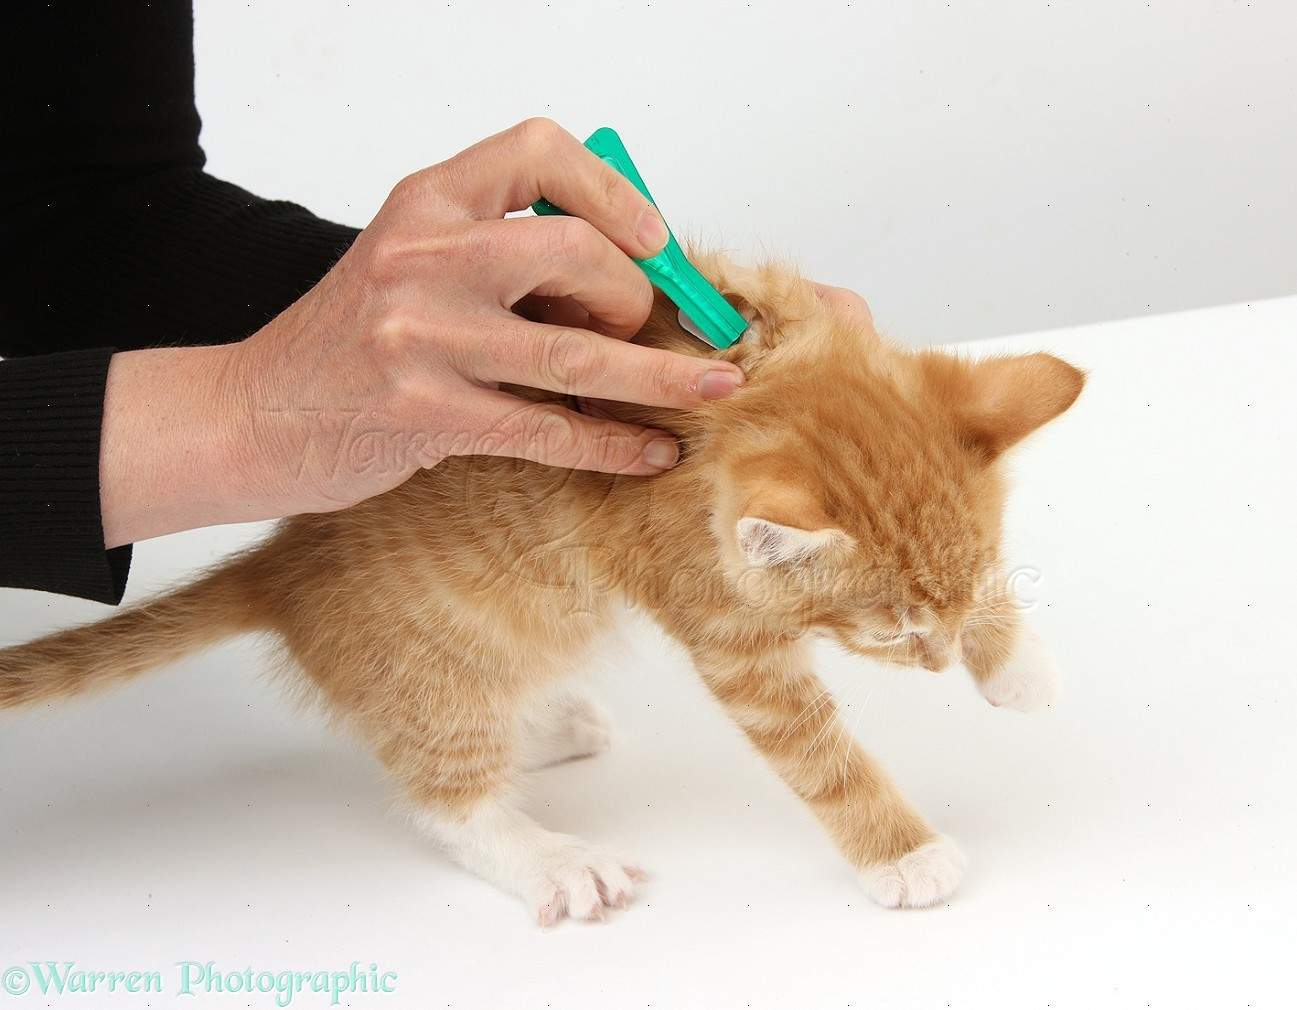 Applying spot-on flea treatment to a maine coon